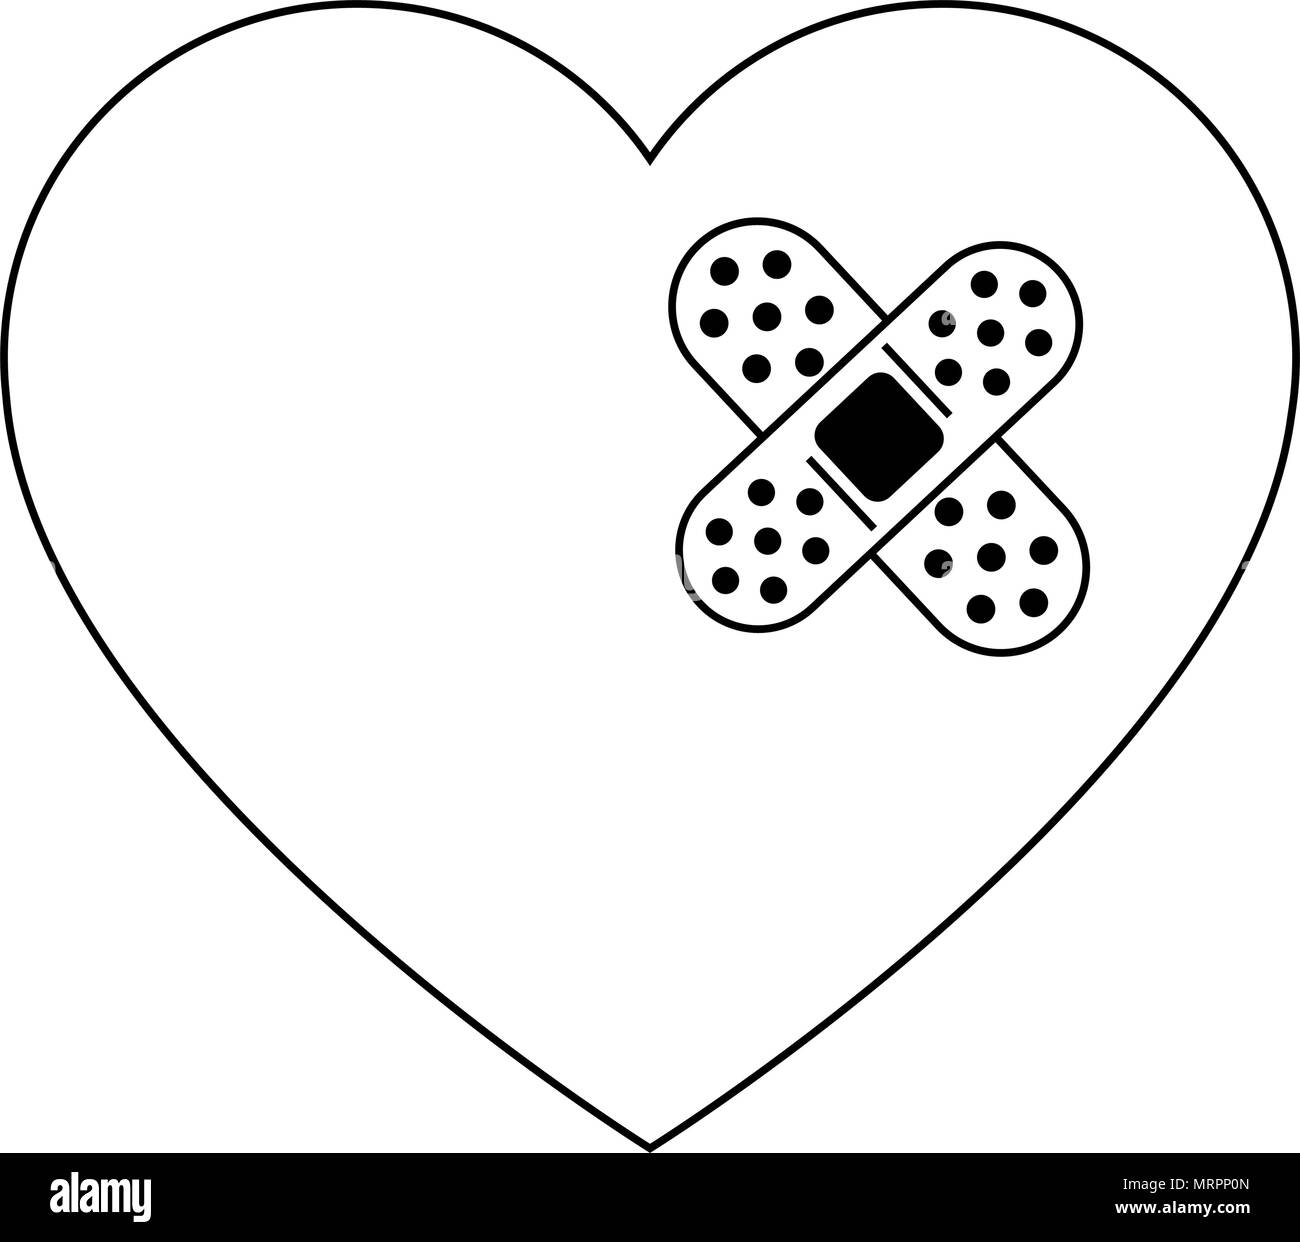 Broken Heart Black And White Stock Photos Images Alamy